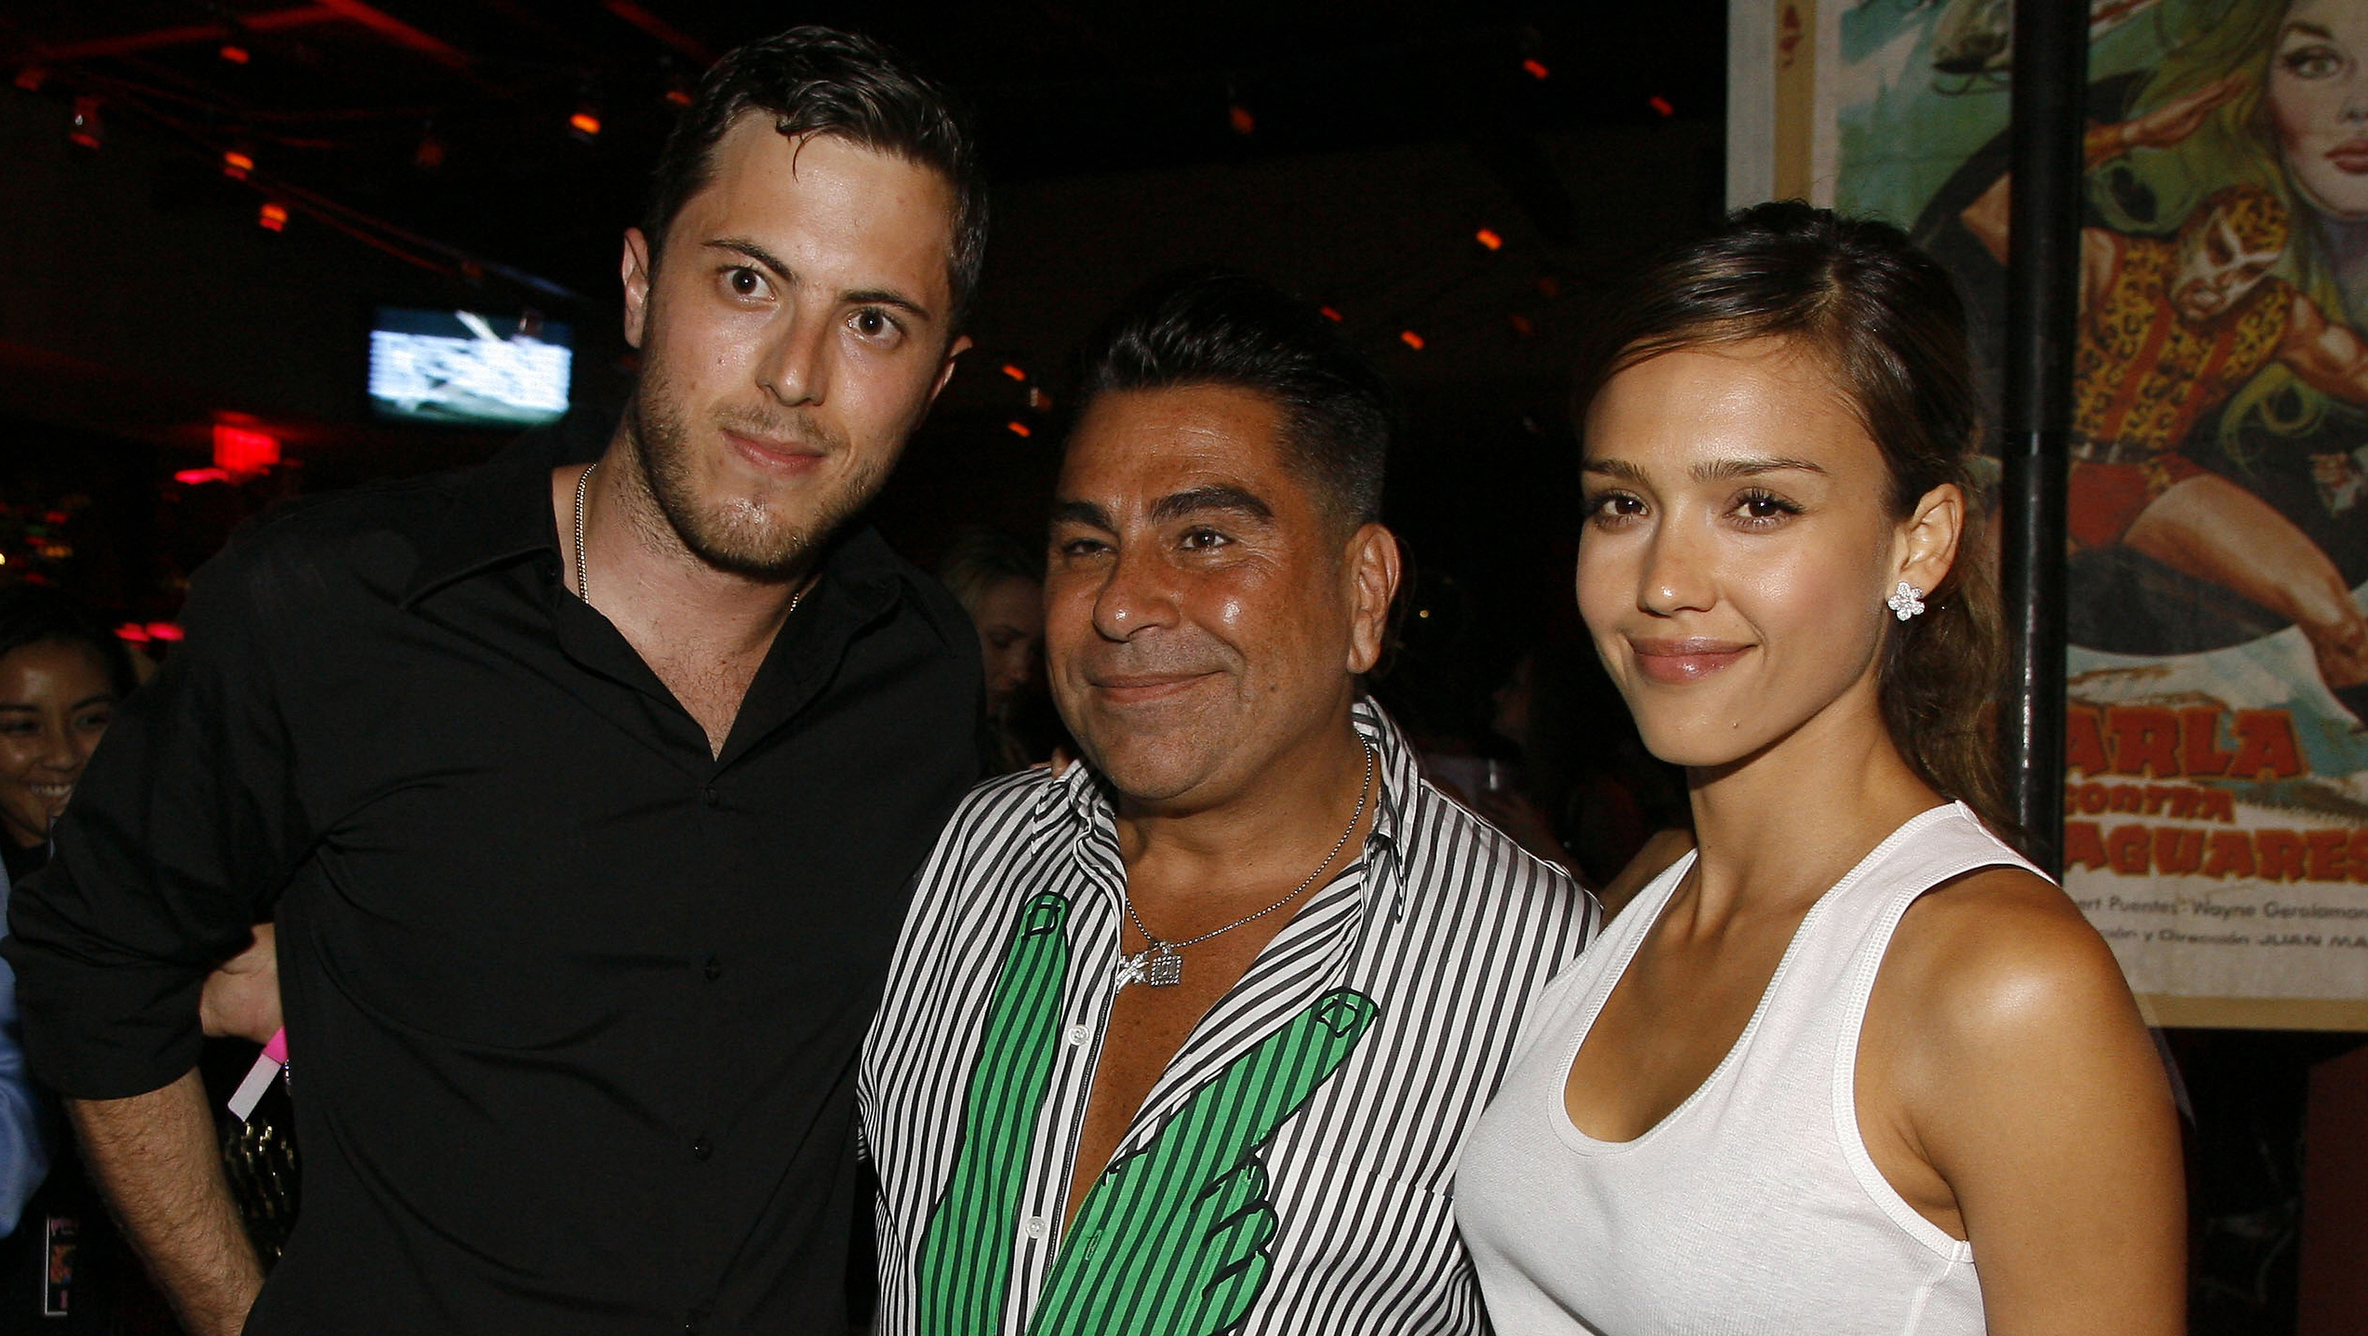 In this 2007 file photo, Harry Morton (from left), Luis Barajas (founder of Flaunt magazine) and Jessica Alba are seen at the opening of the Pink Taco restaurant in Los Angeles.